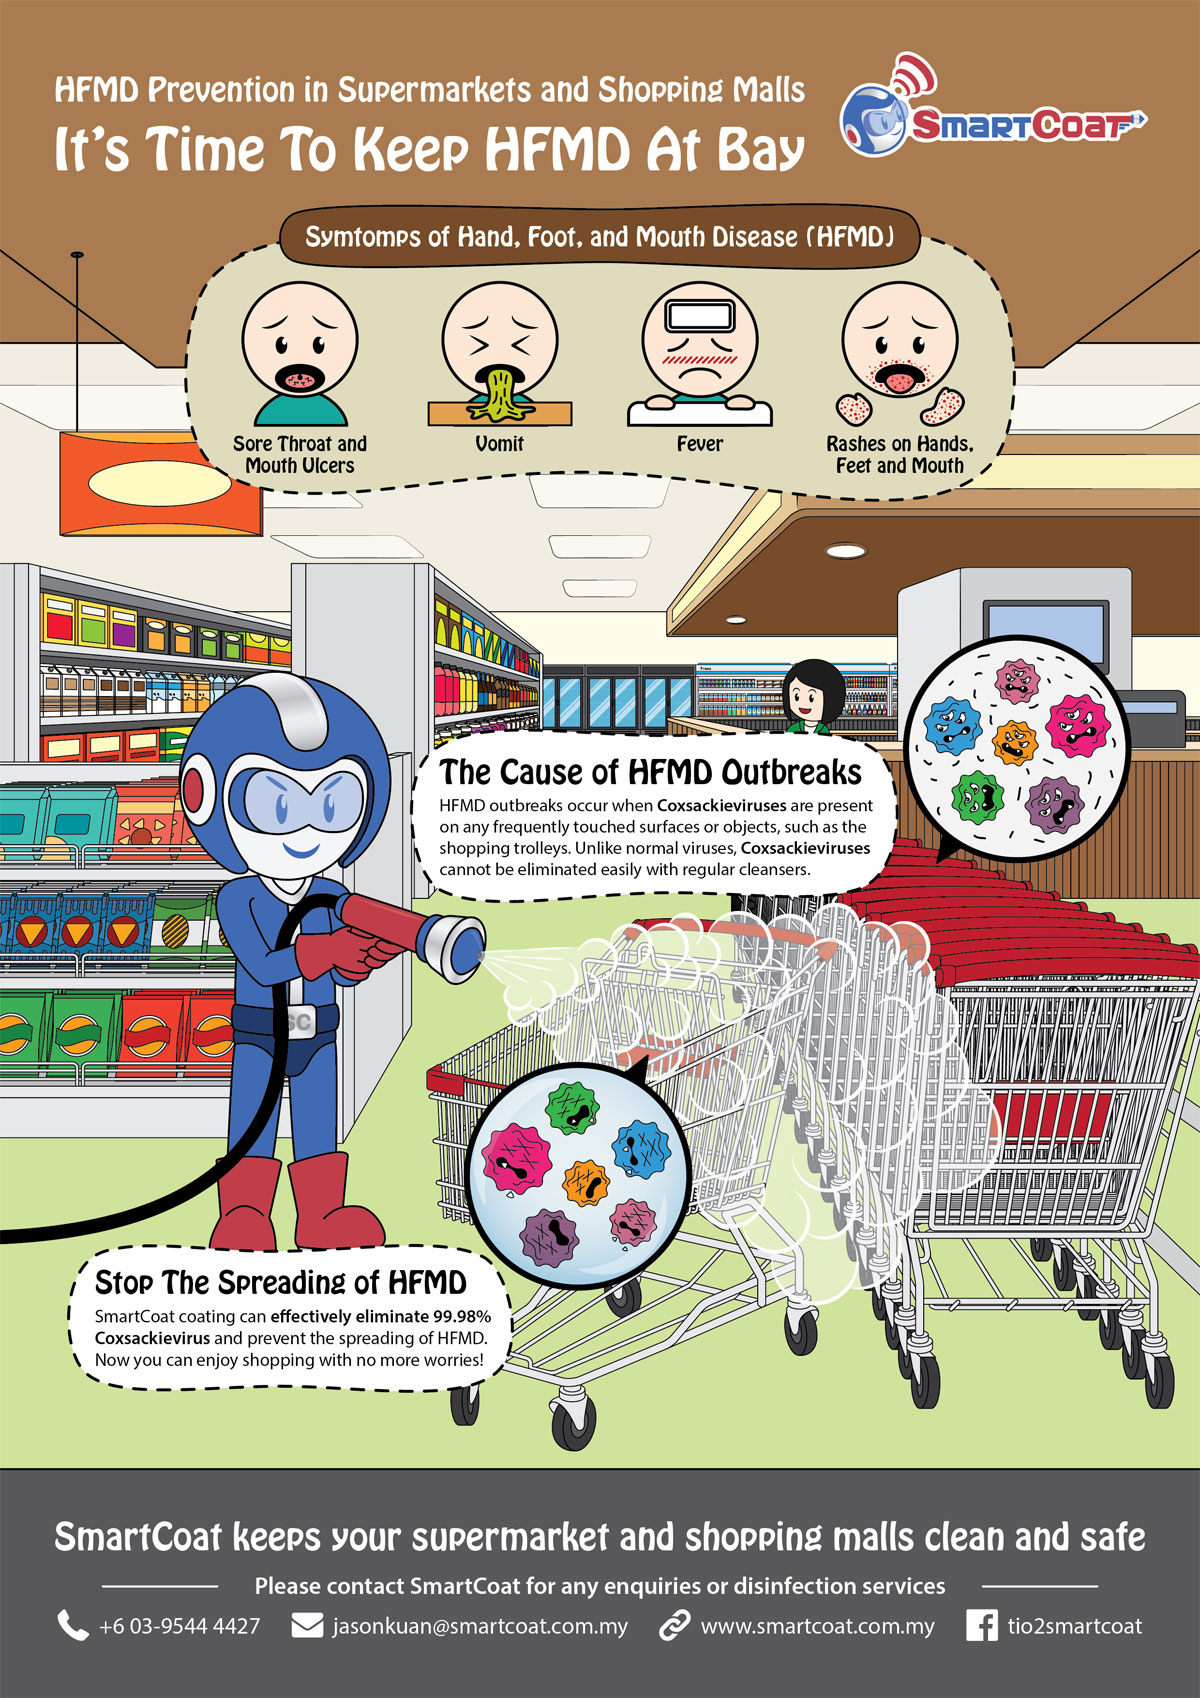 SmartCoat HFMD Prevention in Supermarkets and Malls Poster Design 05